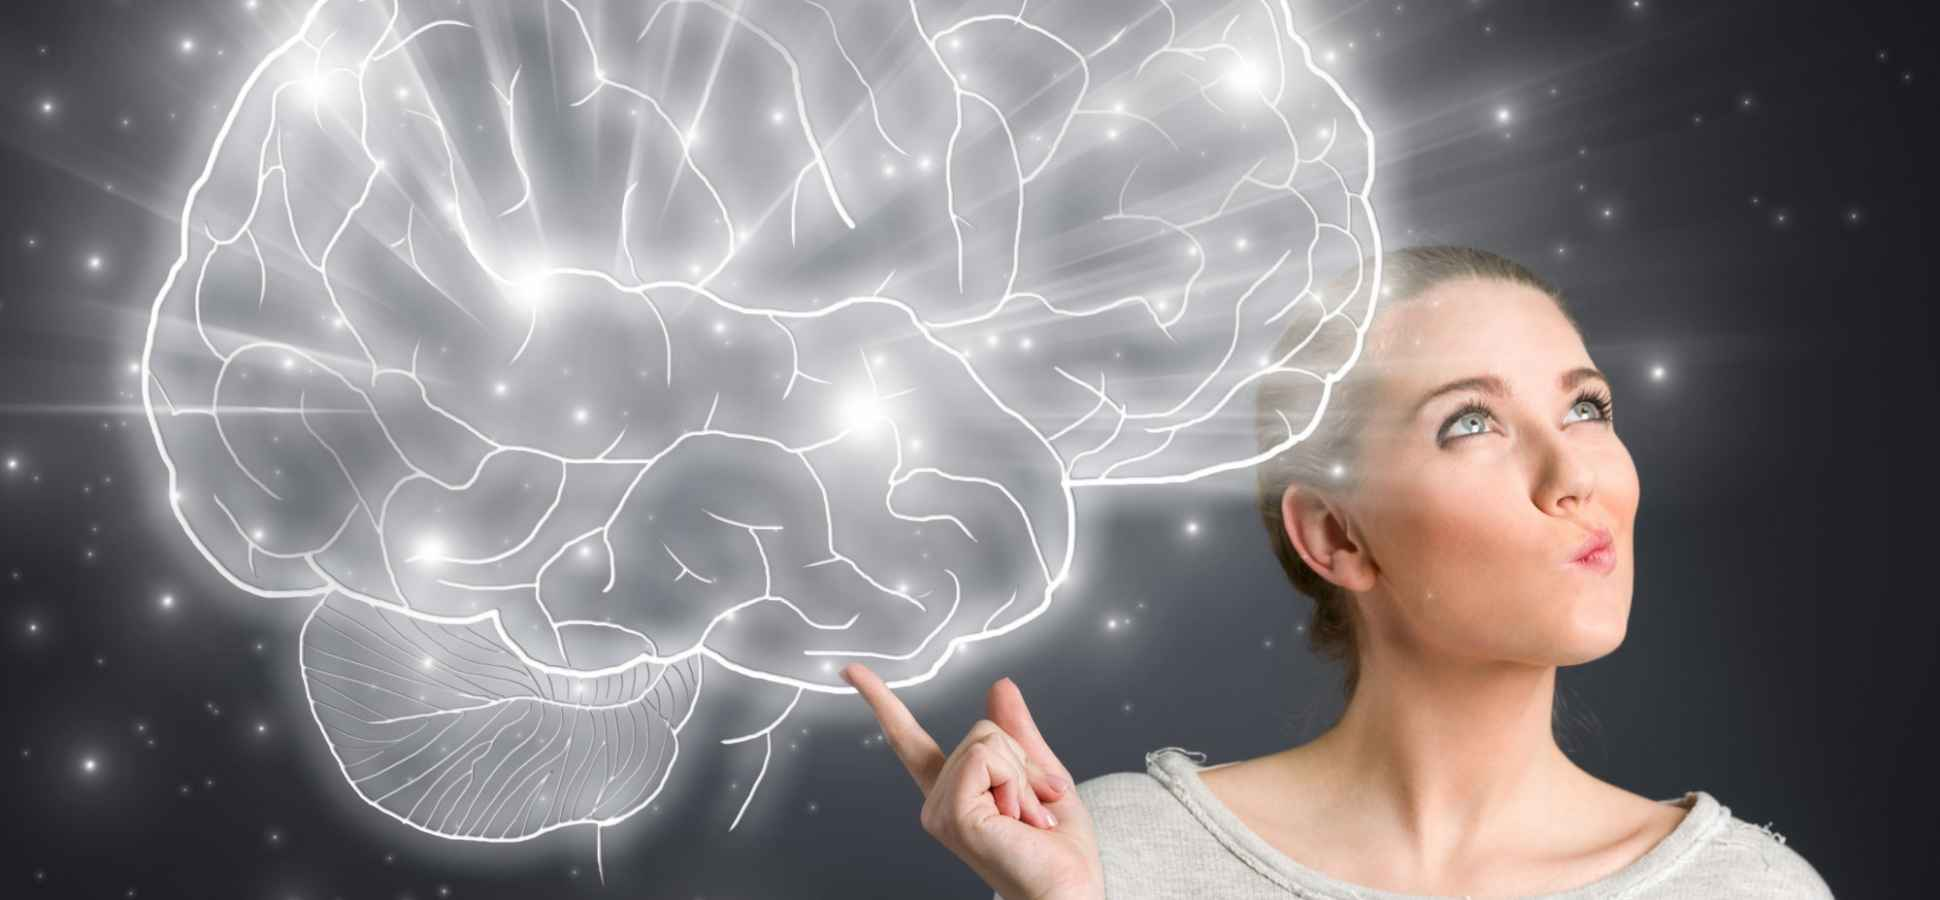 6 Easy Ways to Boost Emotional Intelligence Every Boss Should Know